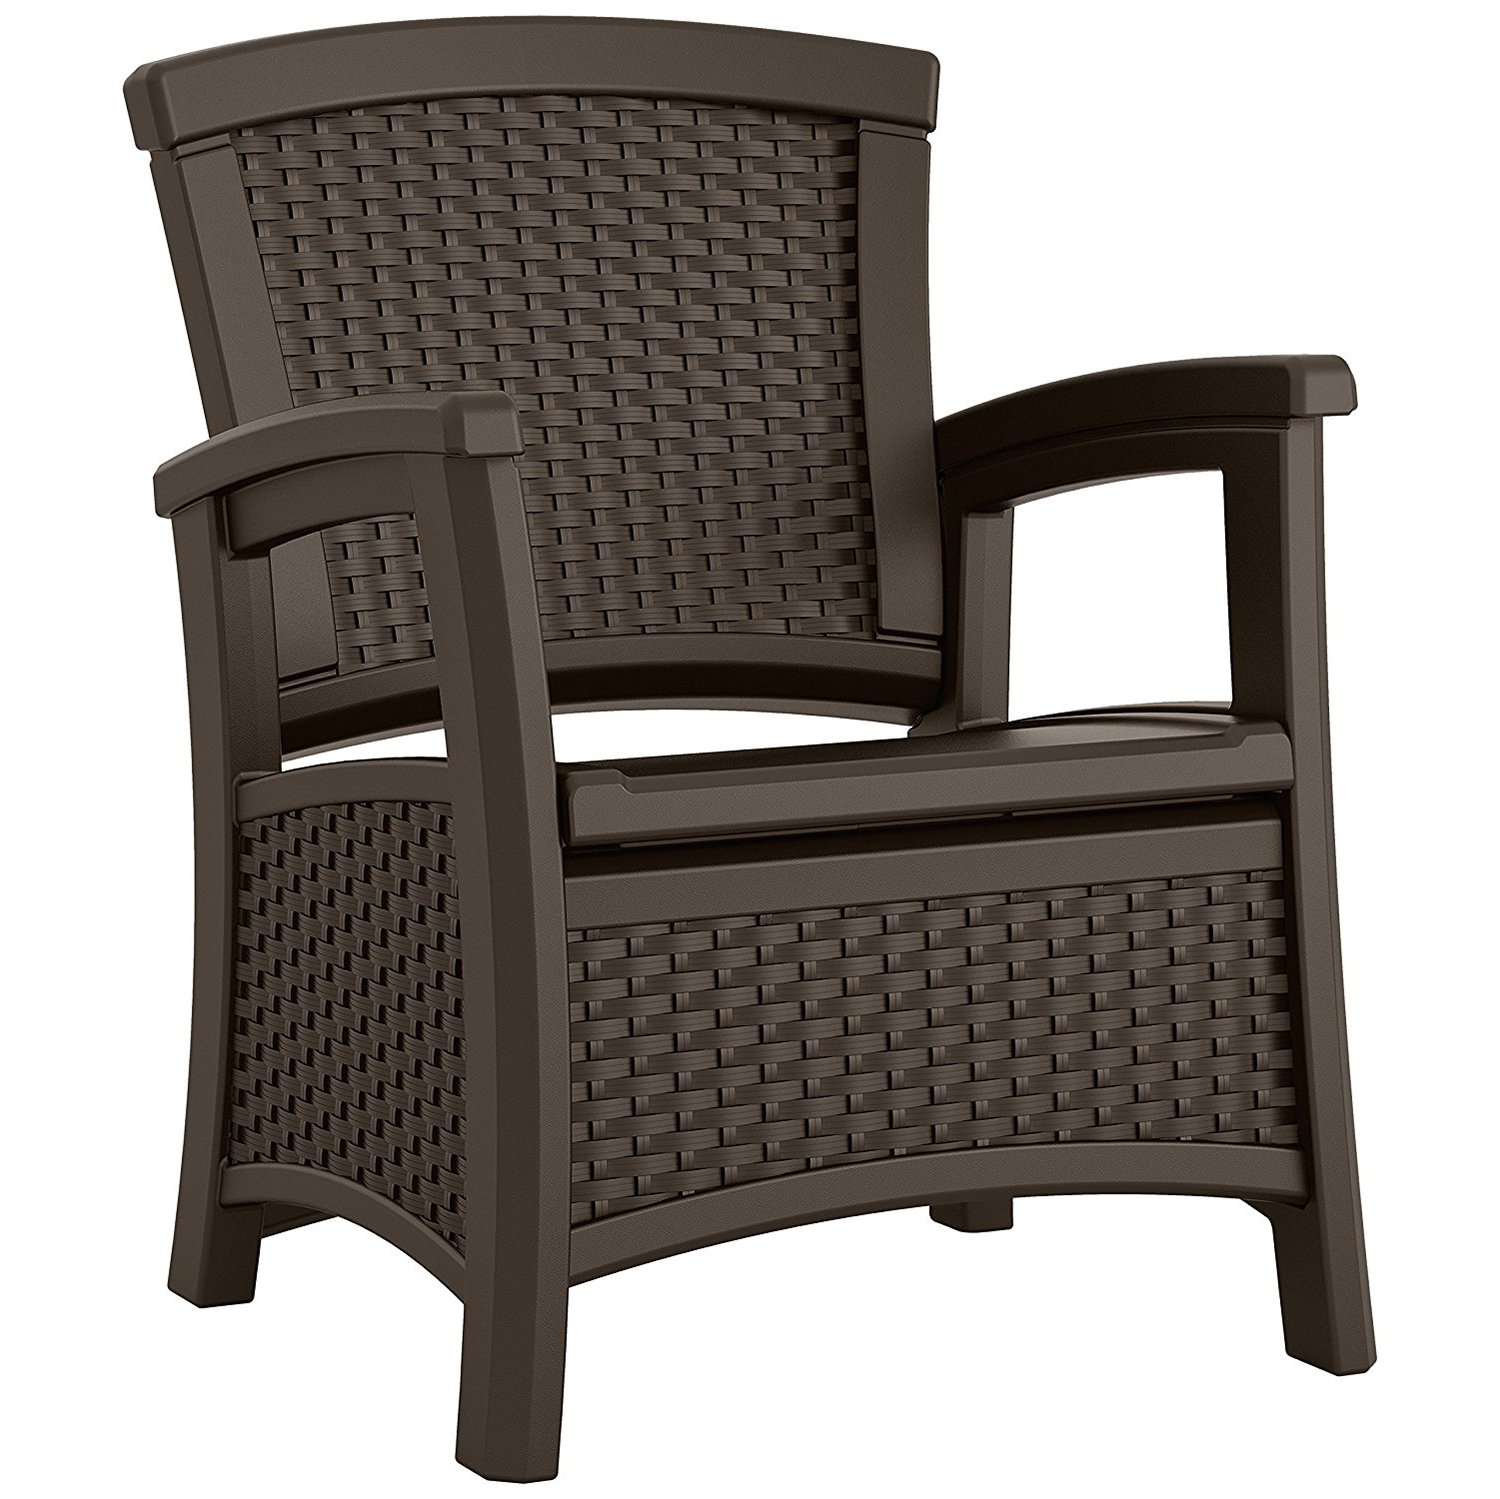 Suncast Elements Resin Club Chair with Storage, Java, BMCC1800